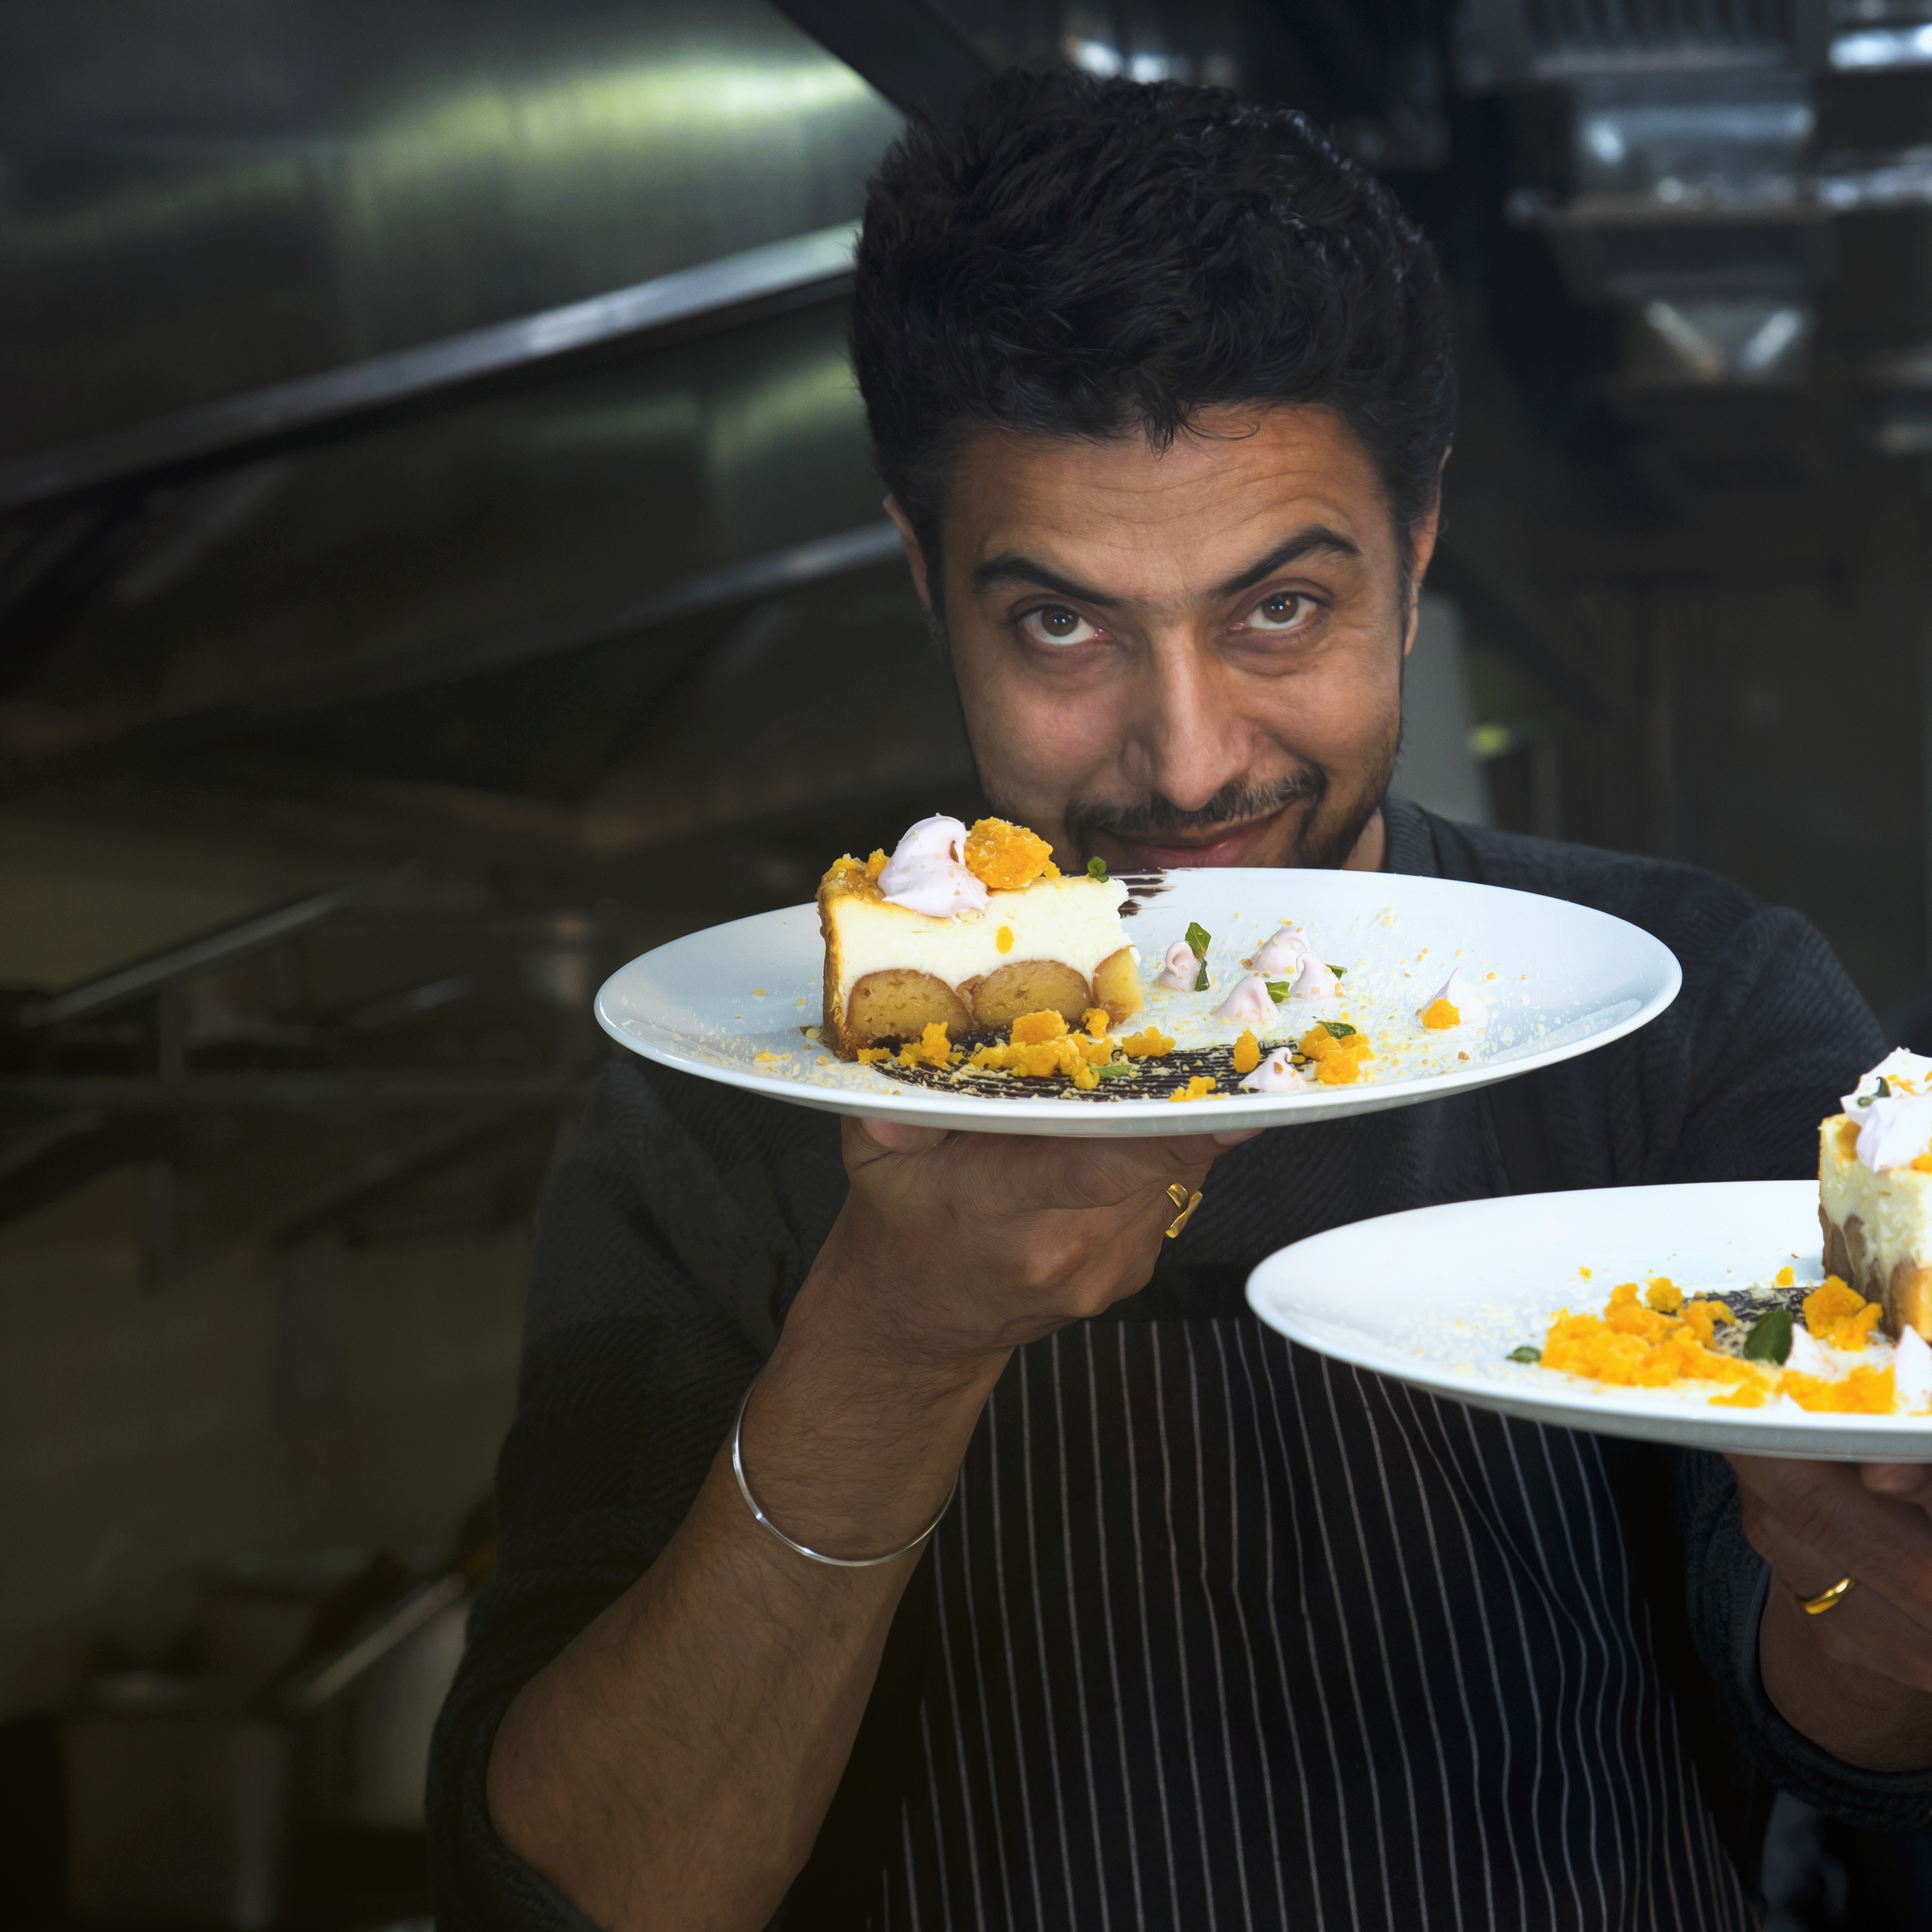 Man Holding Two Plates With Cooked Foods